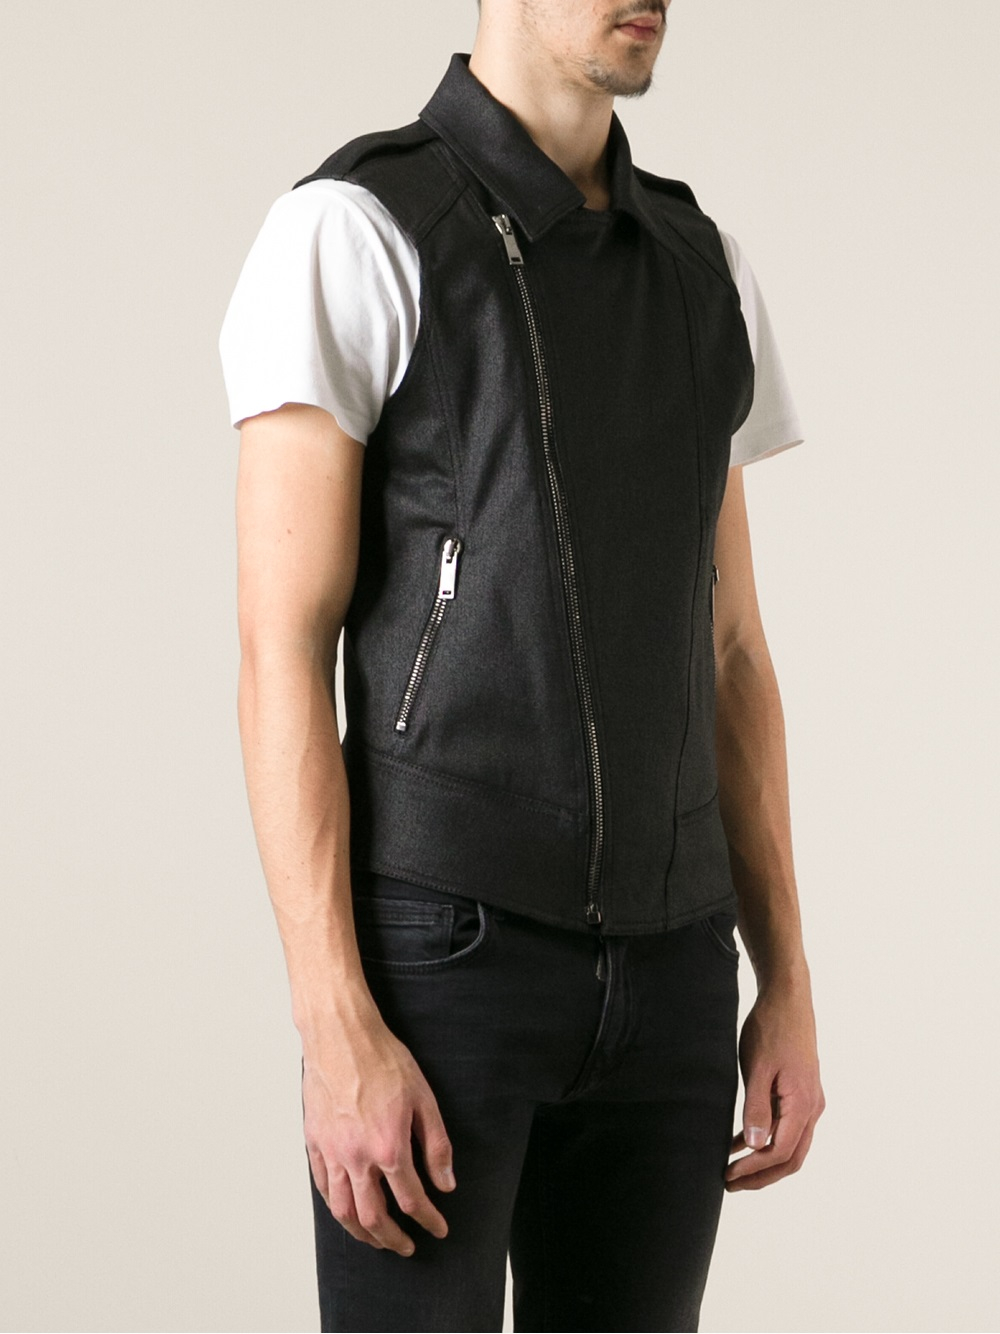 harmonious colors outlet sale low priced Gareth Pugh Sleeveless Biker Jacket in Black for Men - Lyst